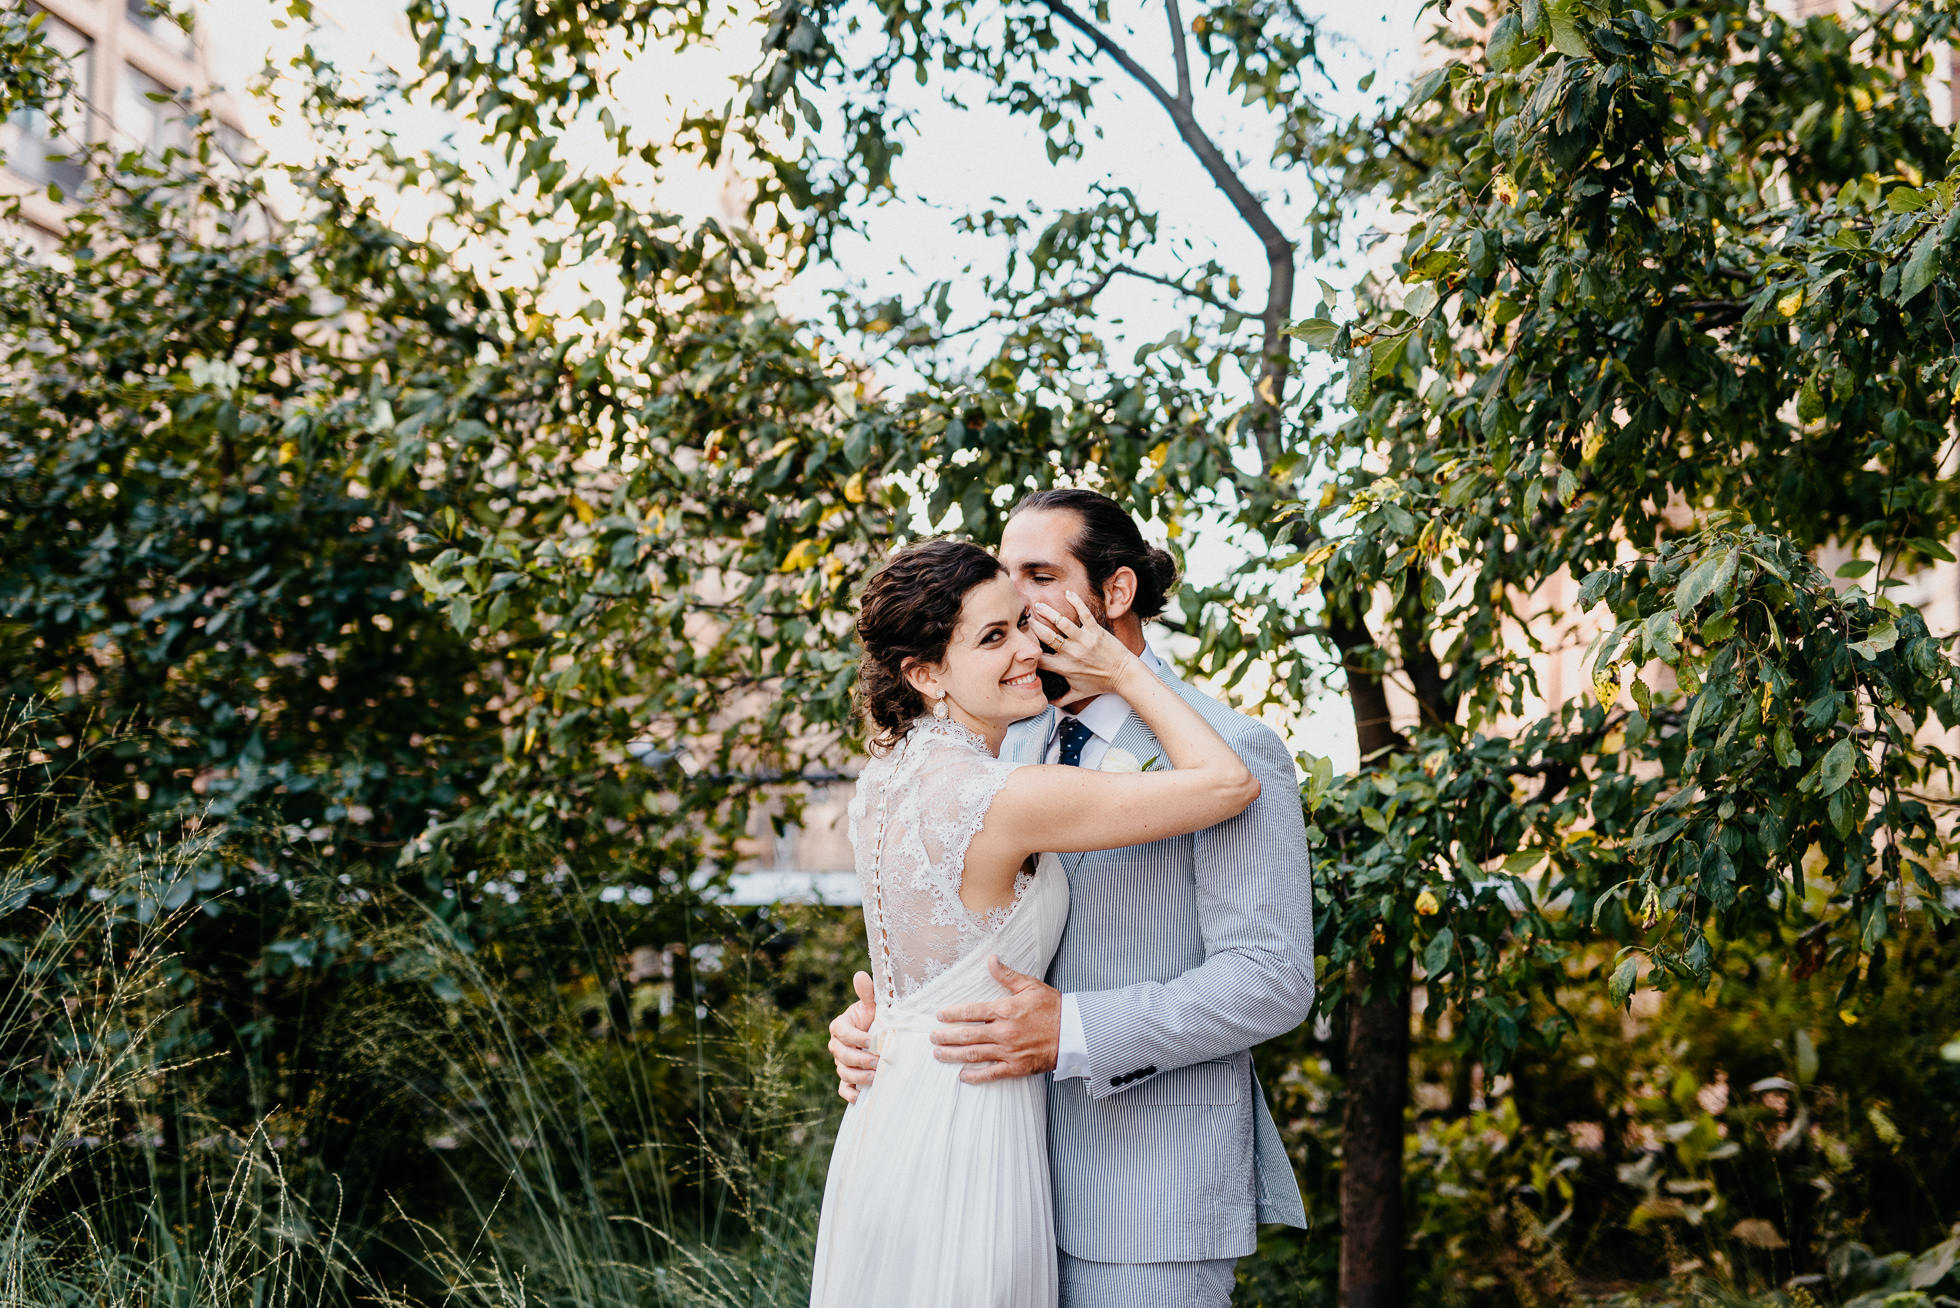 The Highline NYC wedding